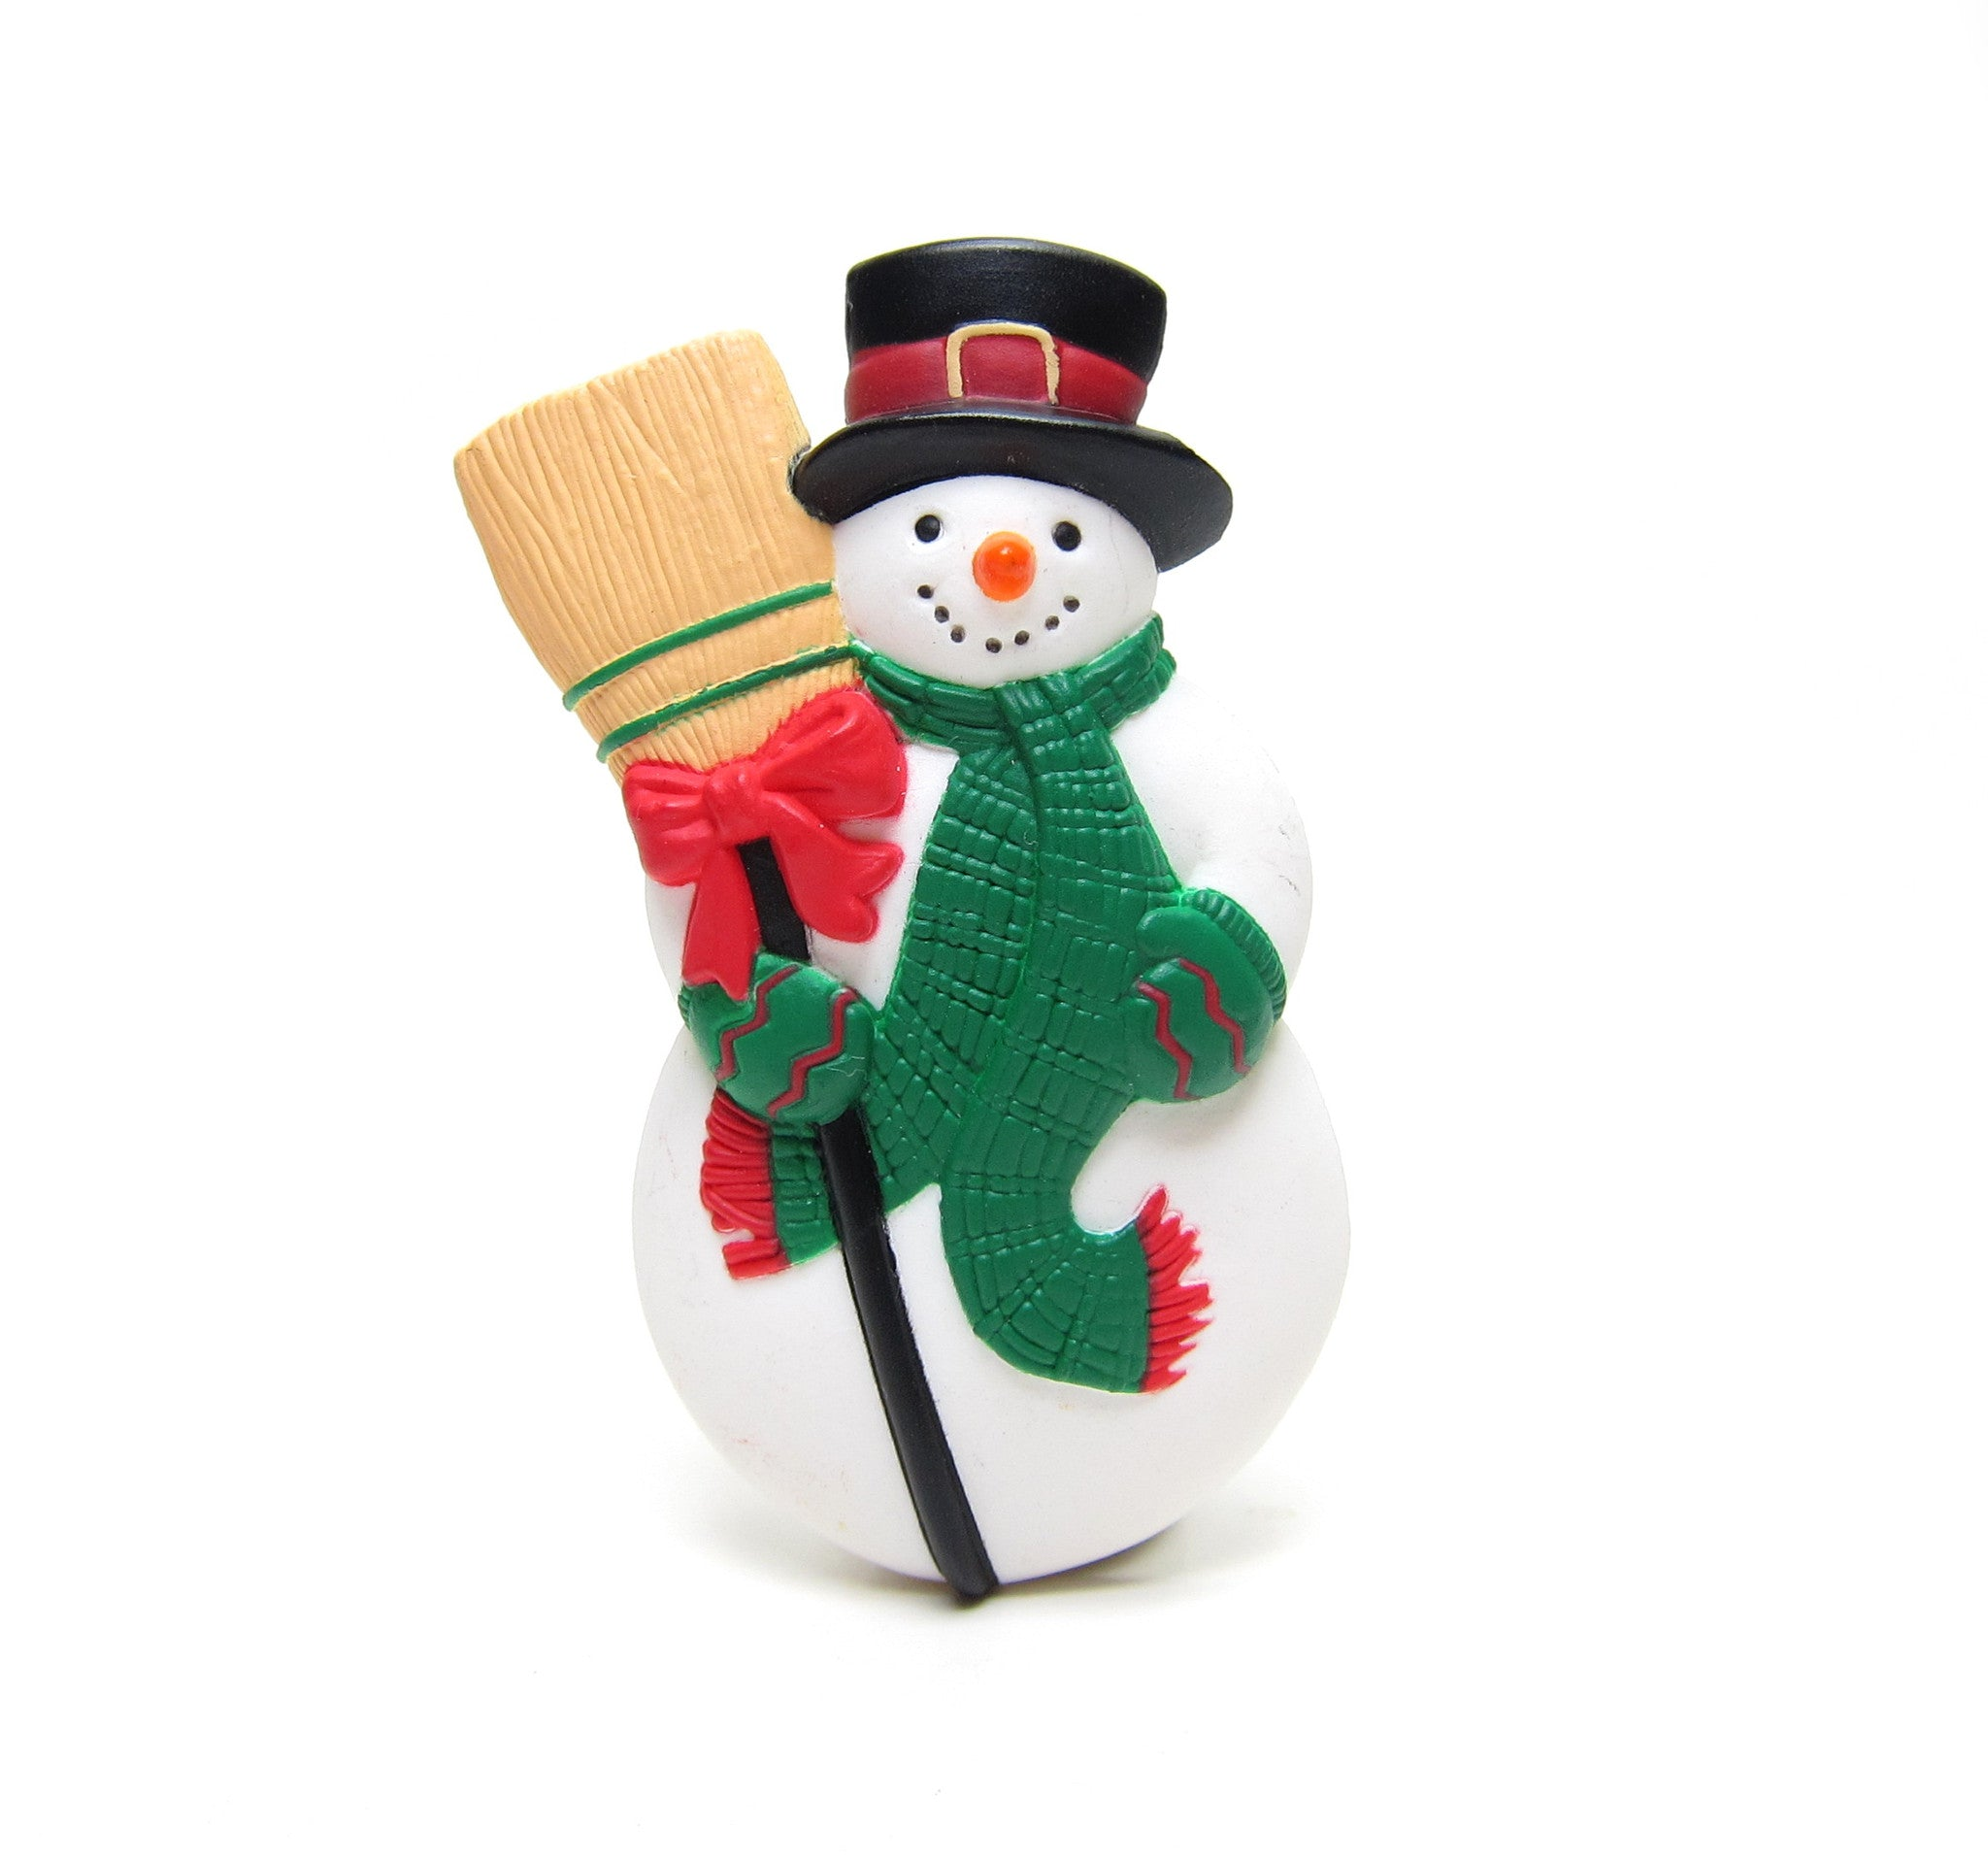 Snowman pin with broomstick vintage Hallmark lapel